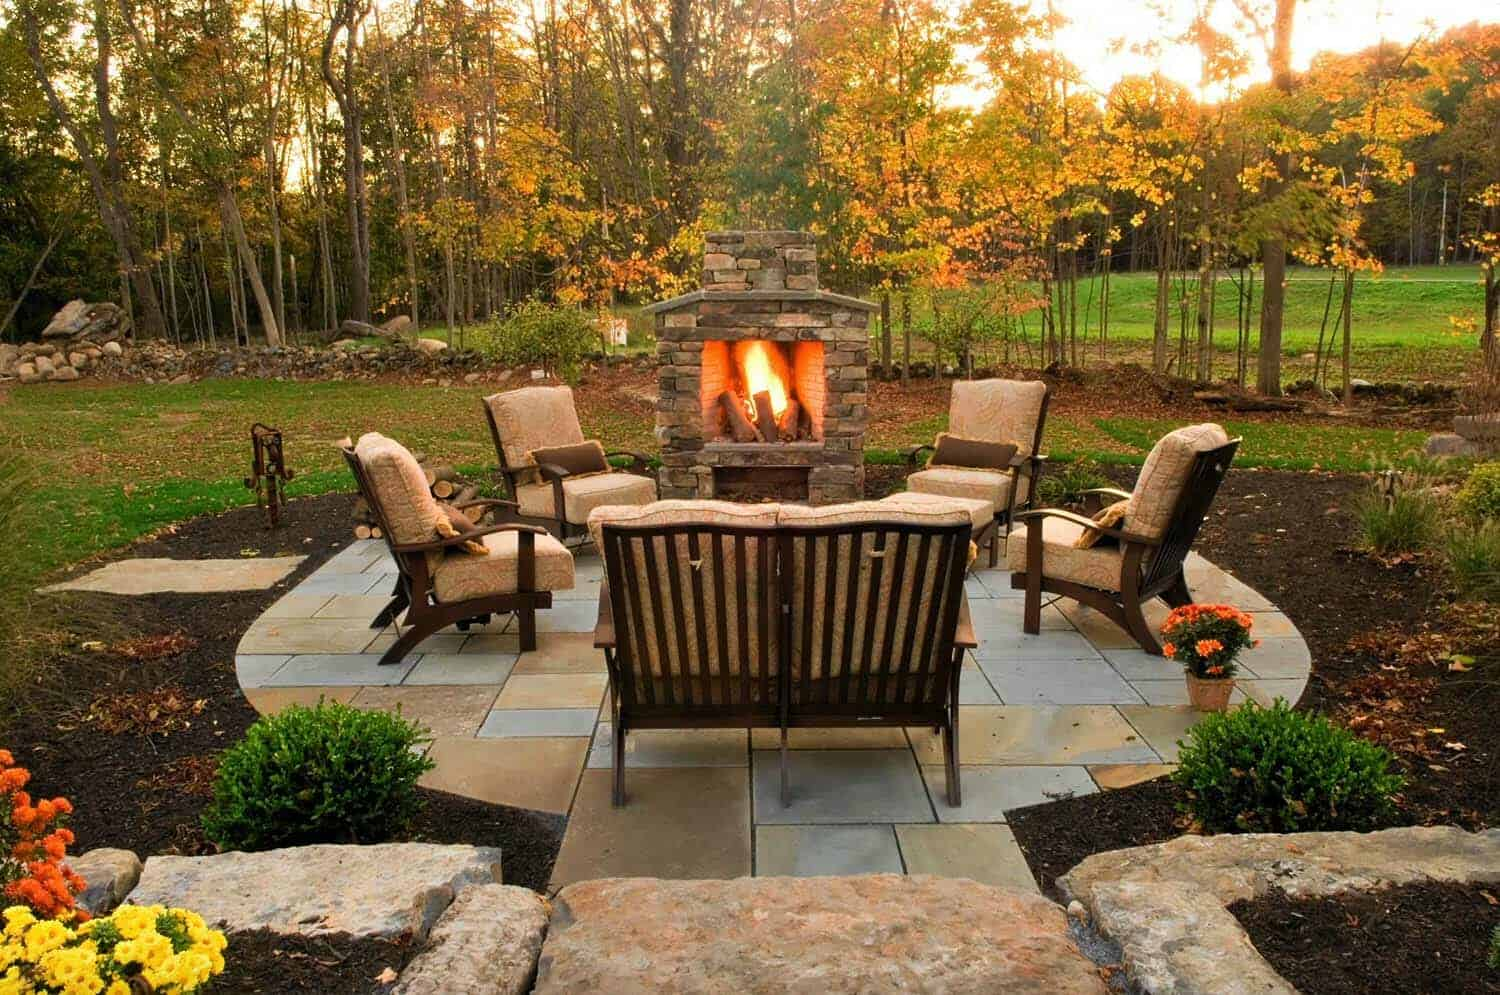 30+ Irresistible outdoor fireplace ideas that will leave ... on Small Outdoor Fireplace Ideas id=40474